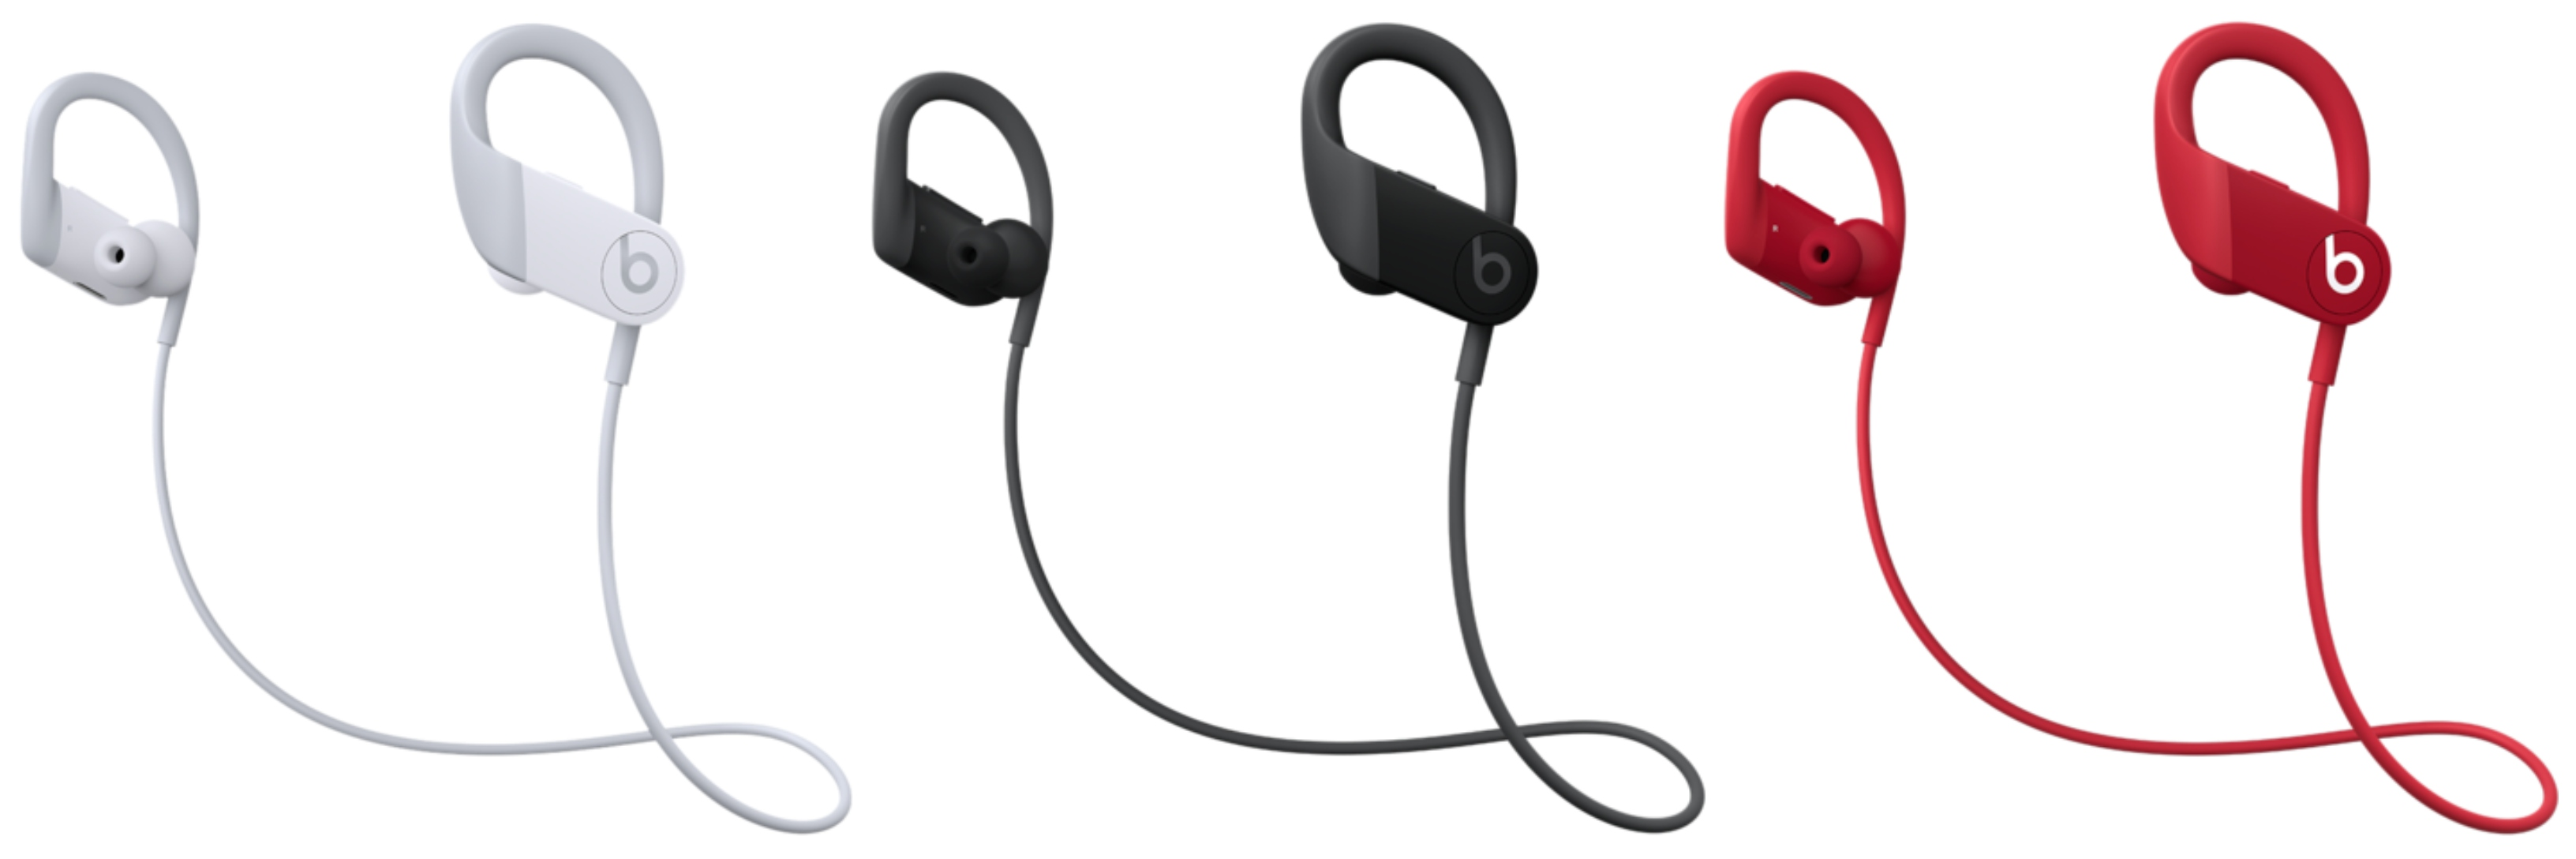 Powerbeats High Performance Wireless Earbuds